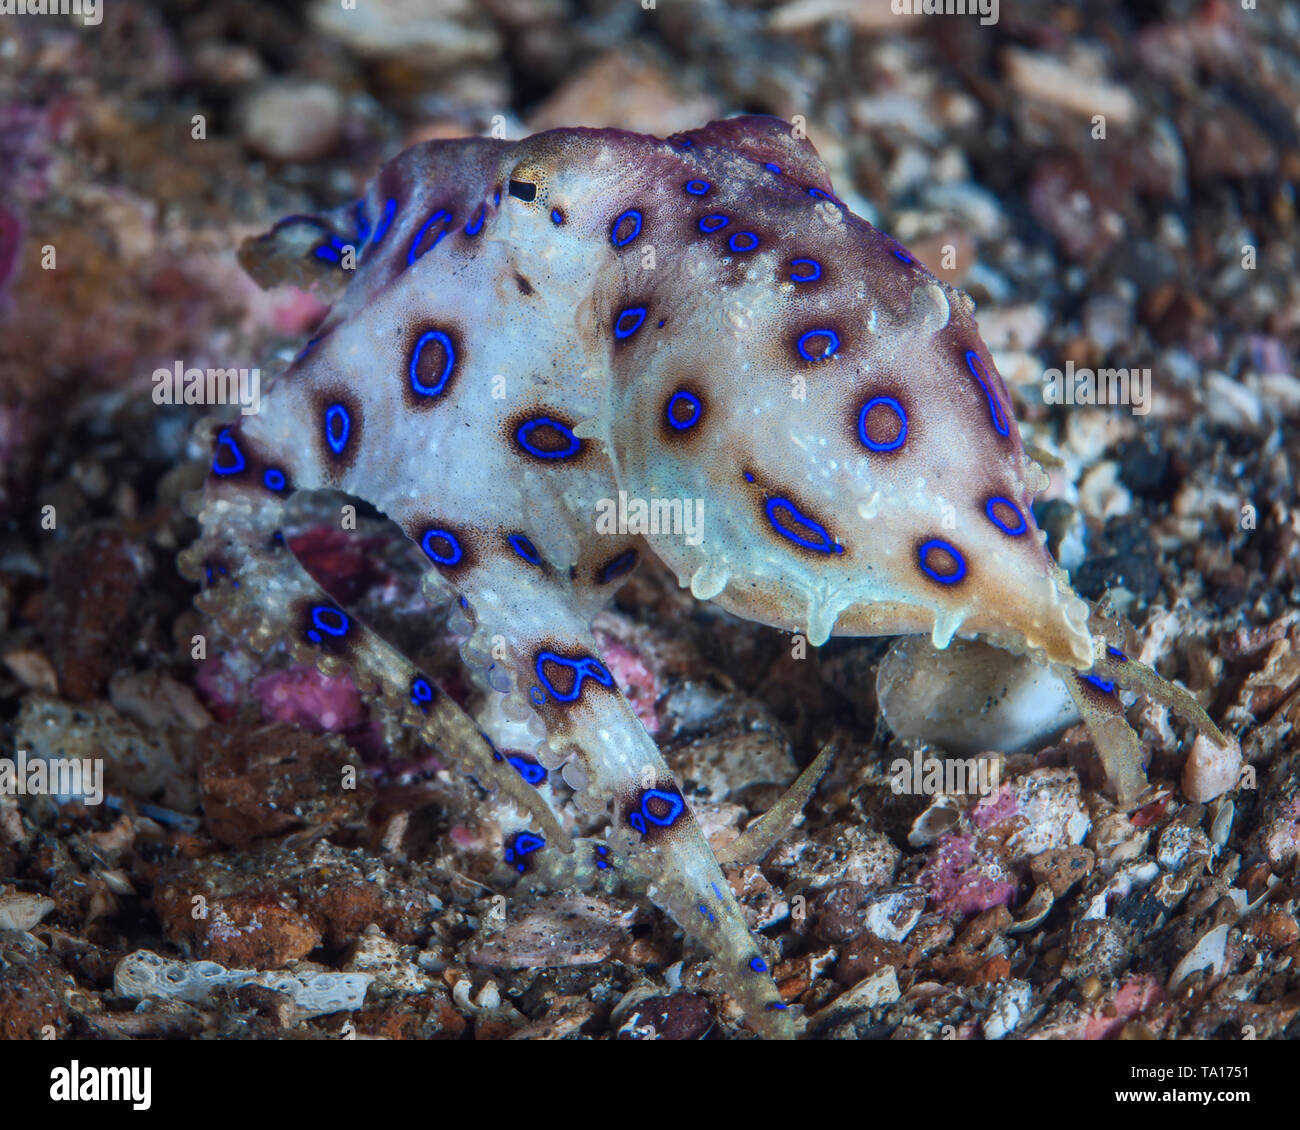 Blue-ringed octopus (Hapalochlaena) swims away and escapes along the coral reef sea floor. Lembeh Straits, Indonesia. Stock Photo